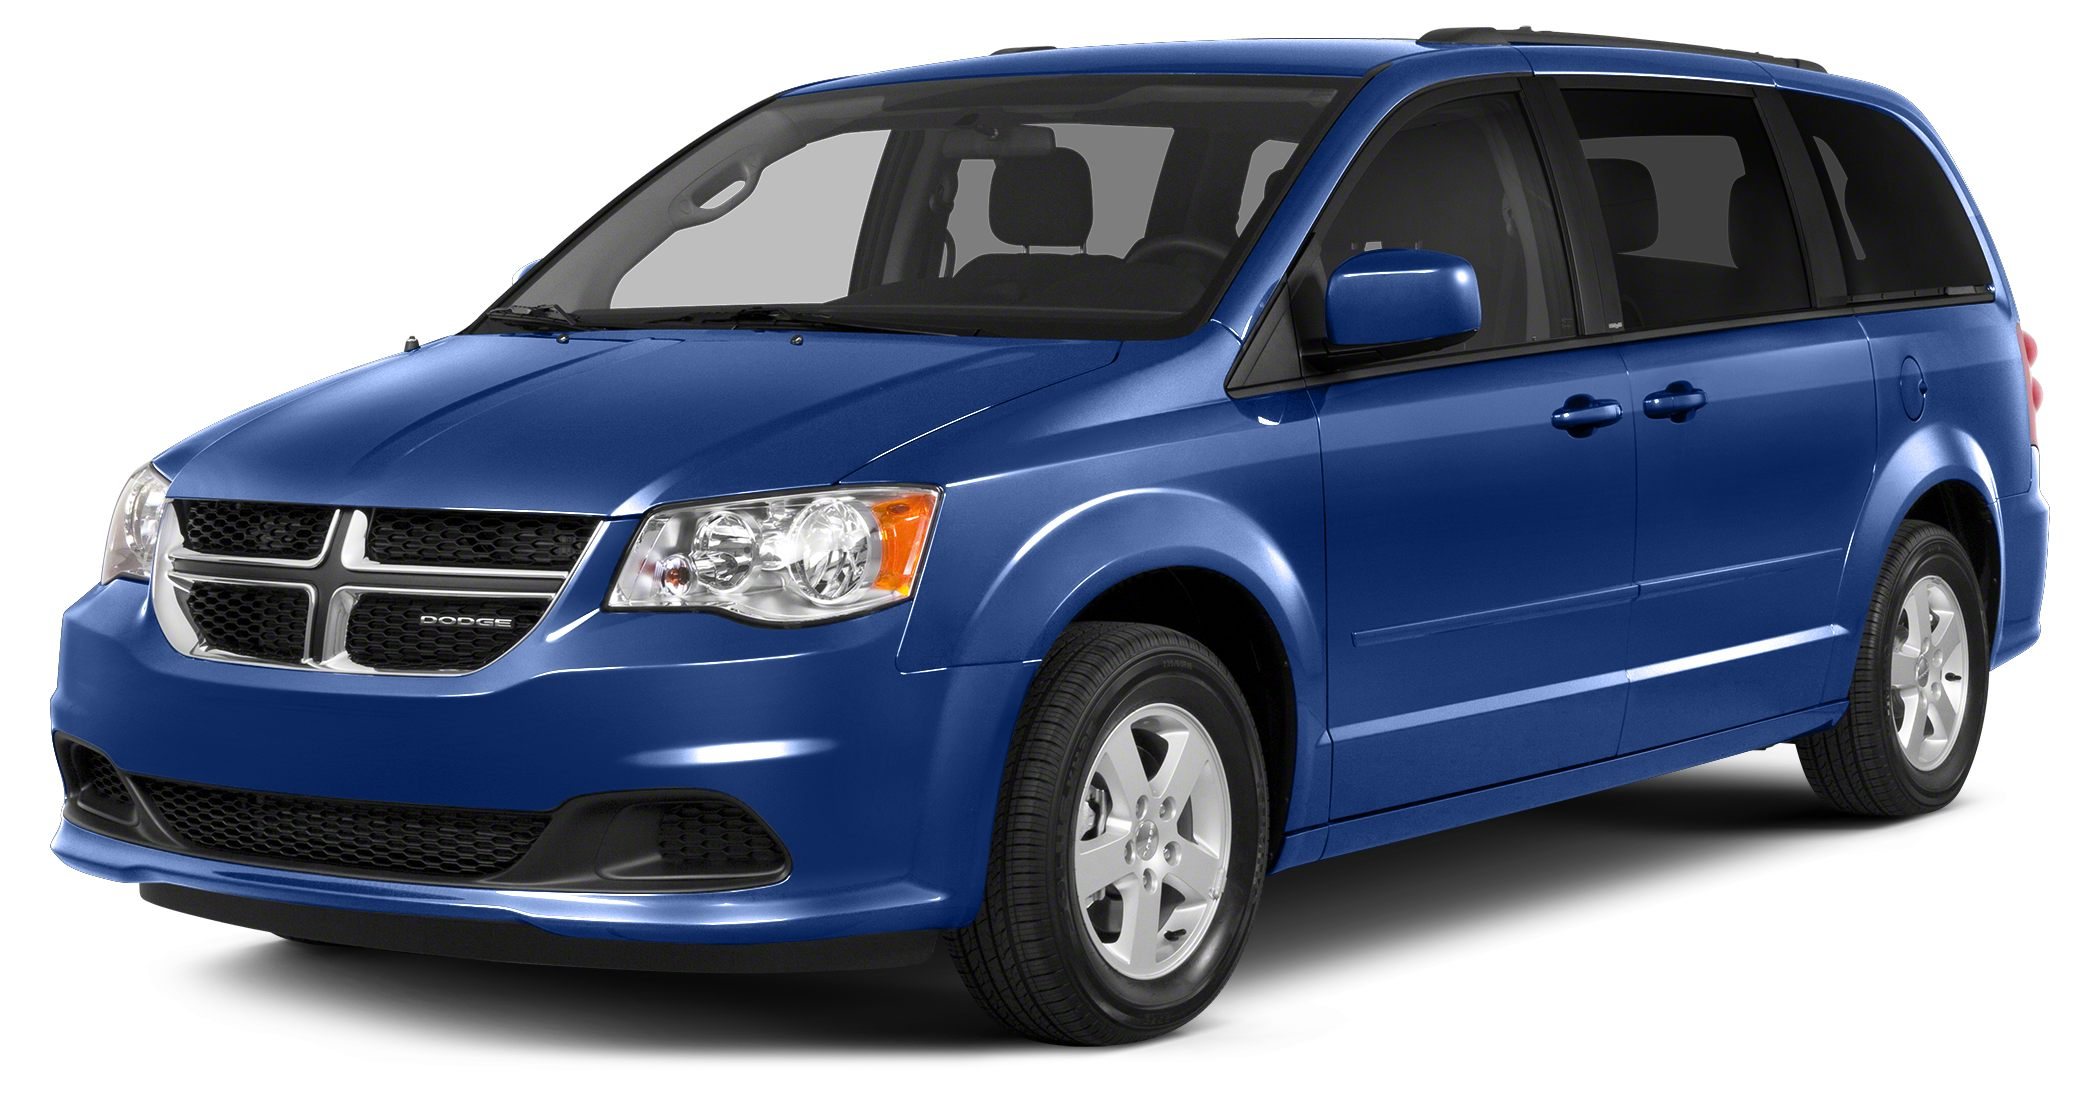 2012 Dodge Grand Caravan SEAVP New Arrival This is the perfect do-it-all car that is guarante